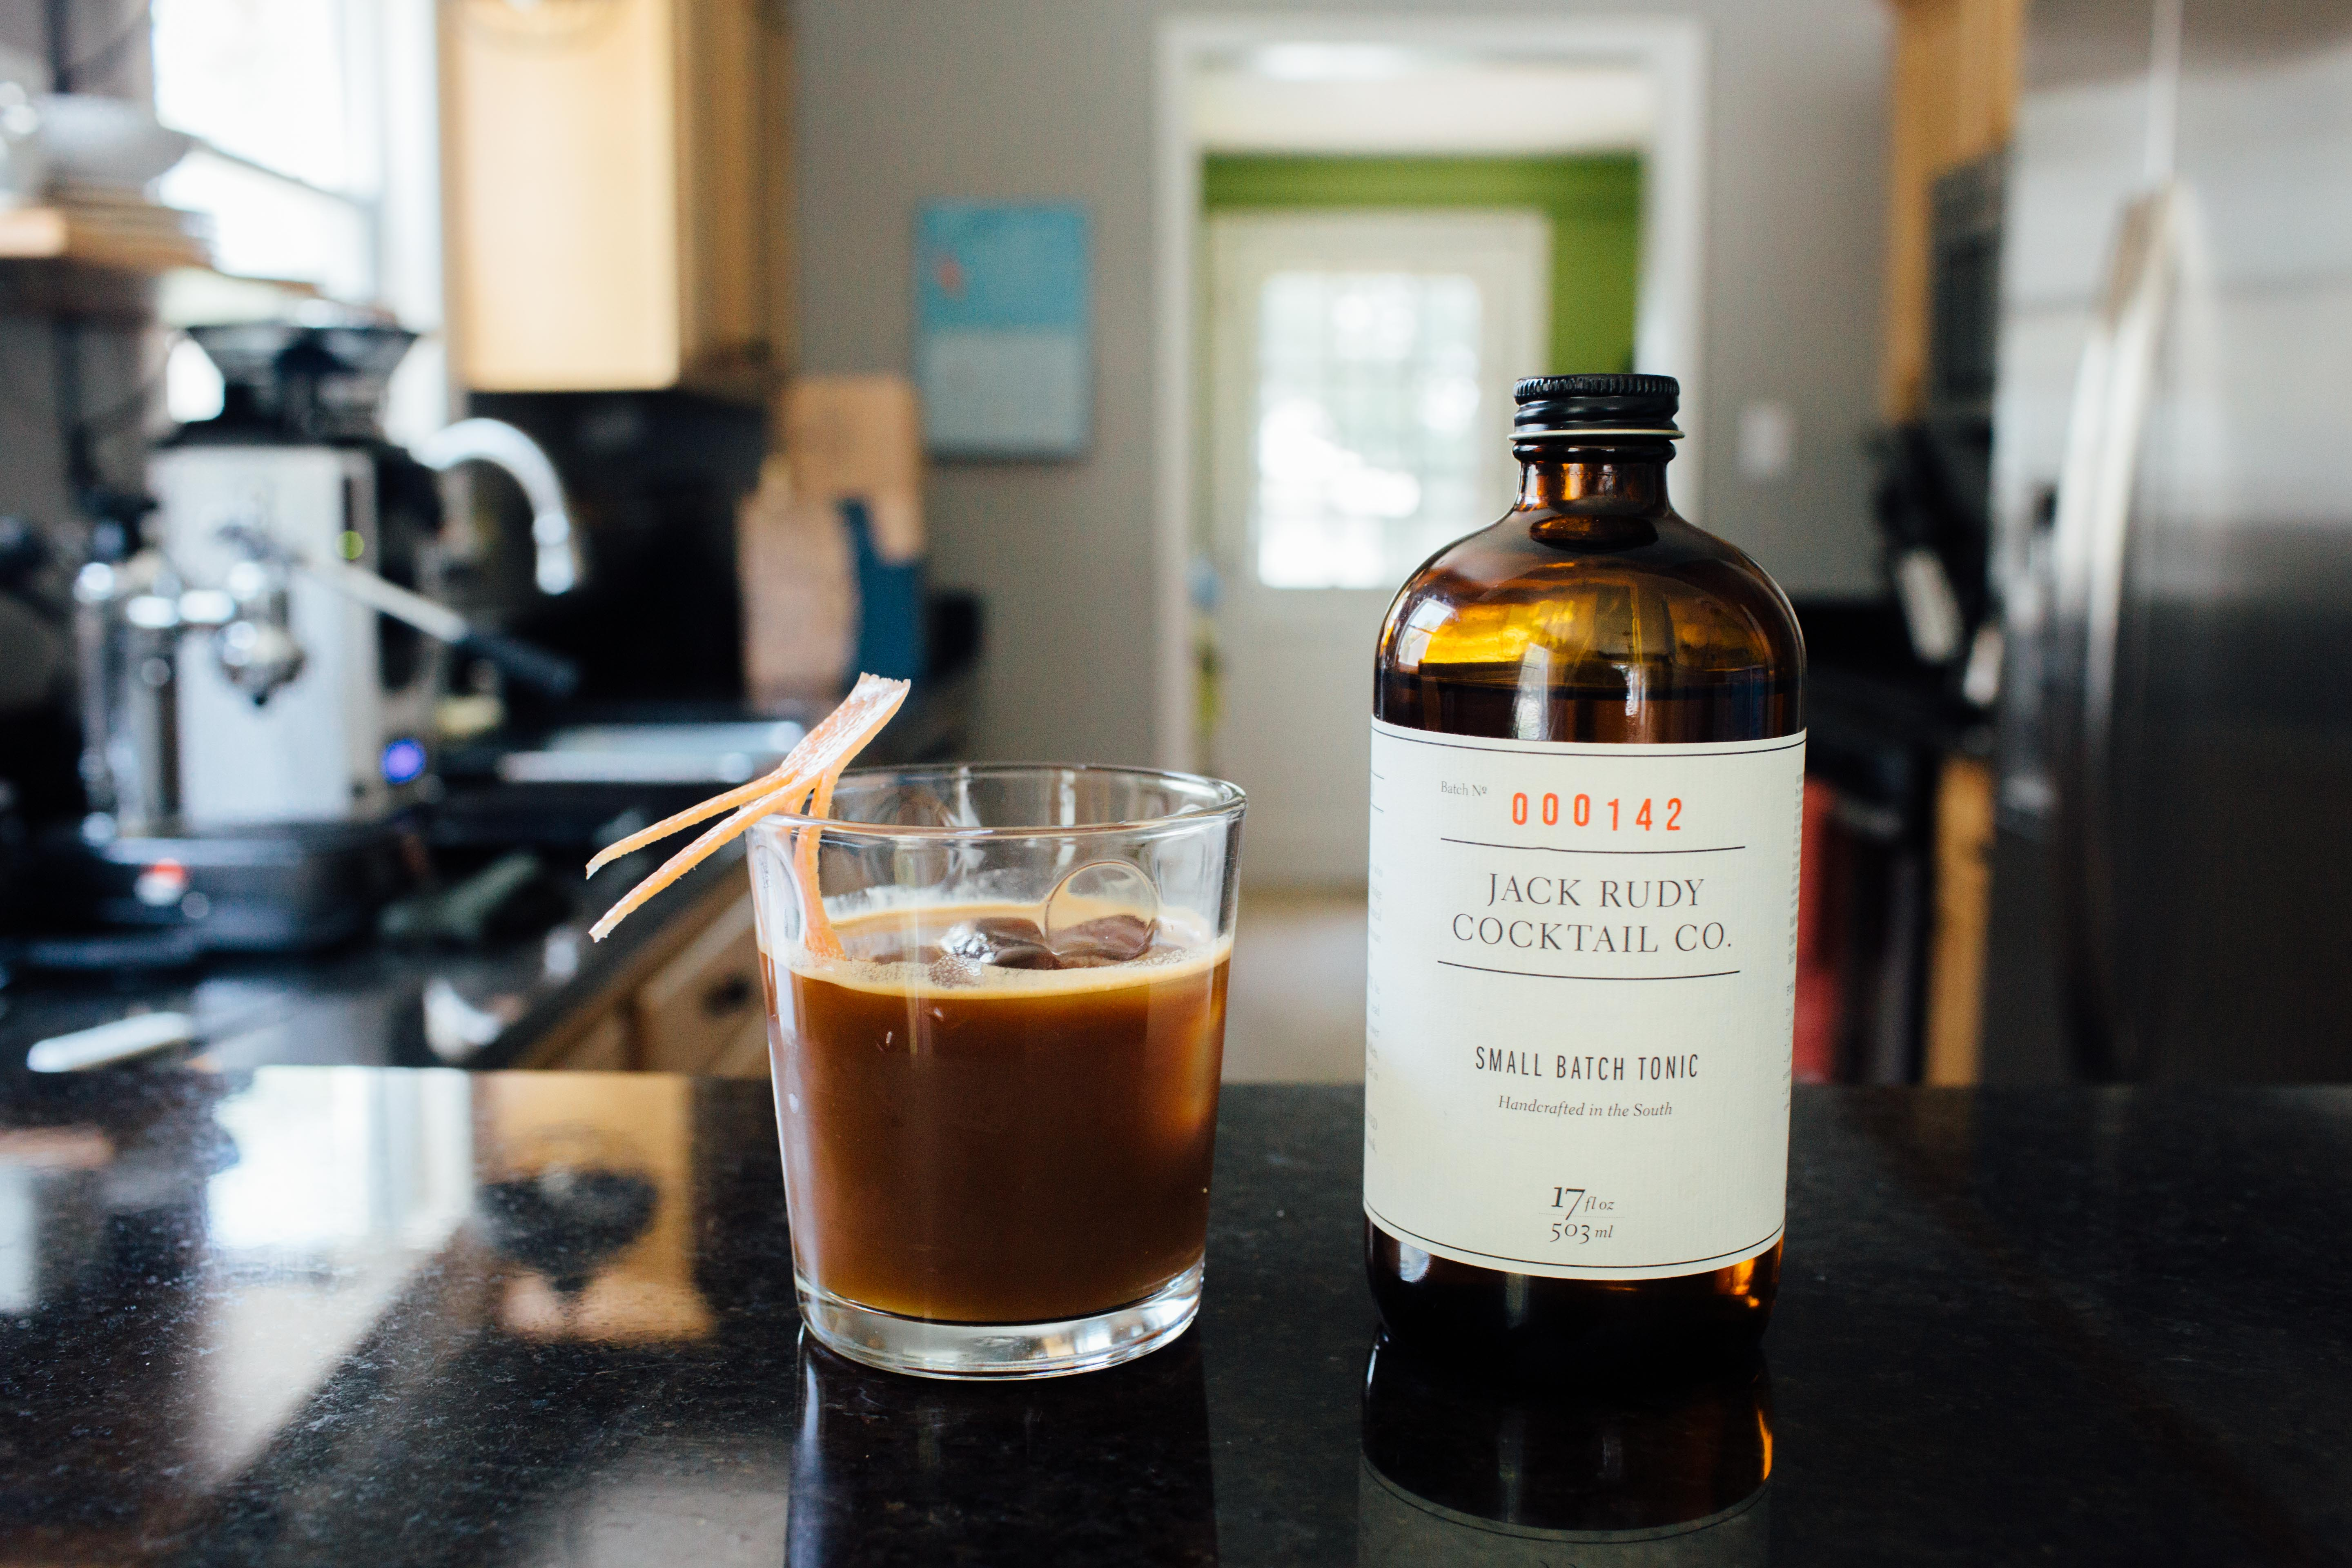 Espresso and tonic are a match made in heaven